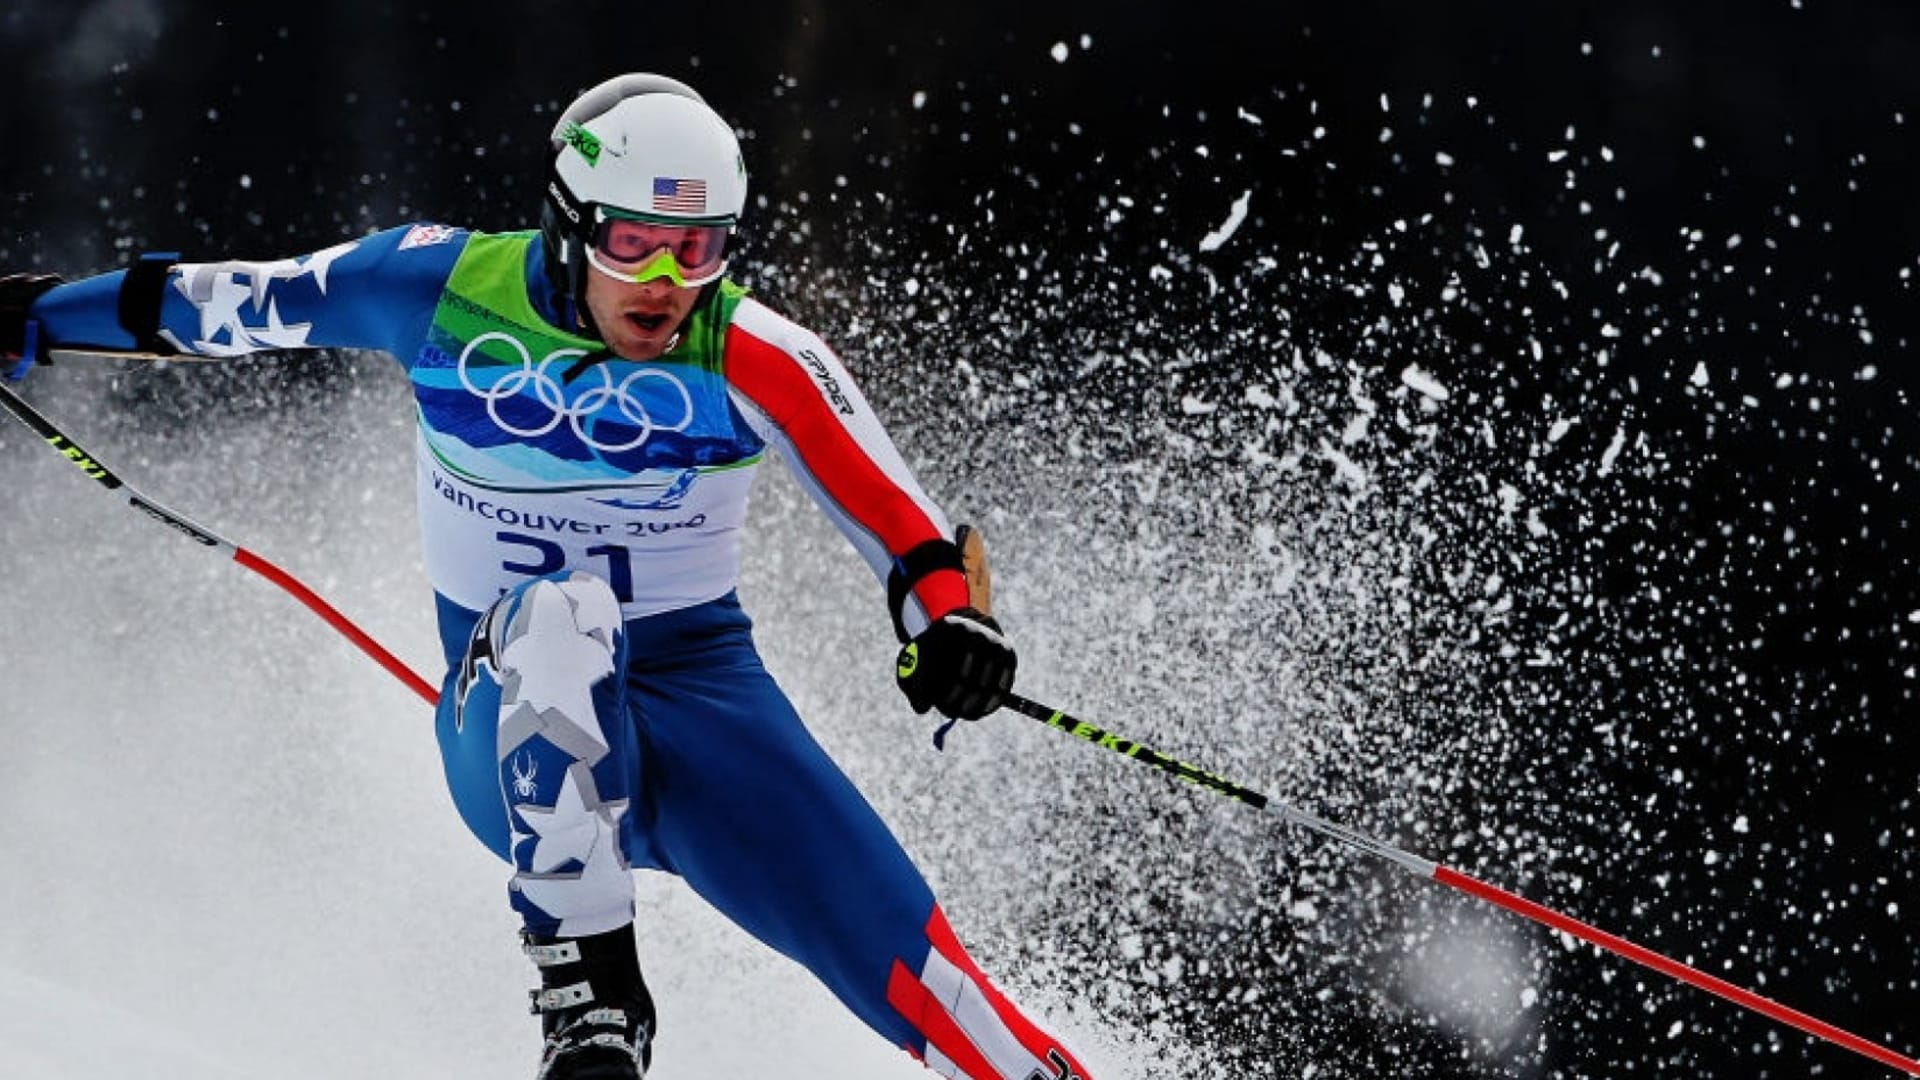 After 11 Years, Bode Miller Just Explained the Creative Mental Trick He Used to Win Olympic Gold